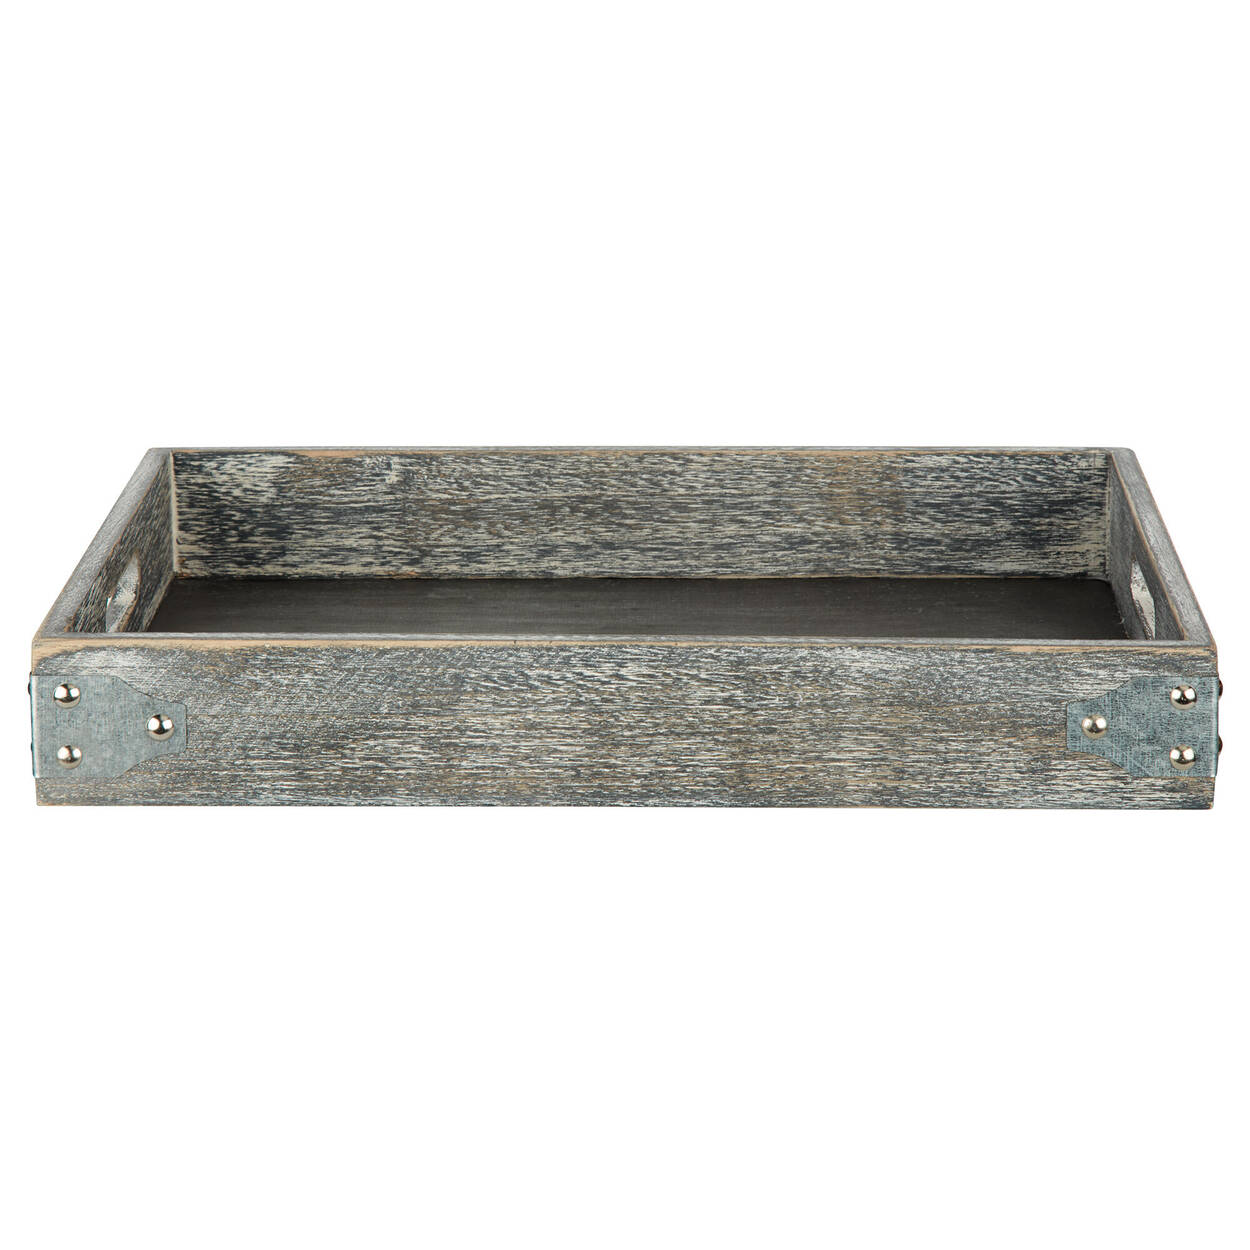 Wood and Galvanized Metal Tray